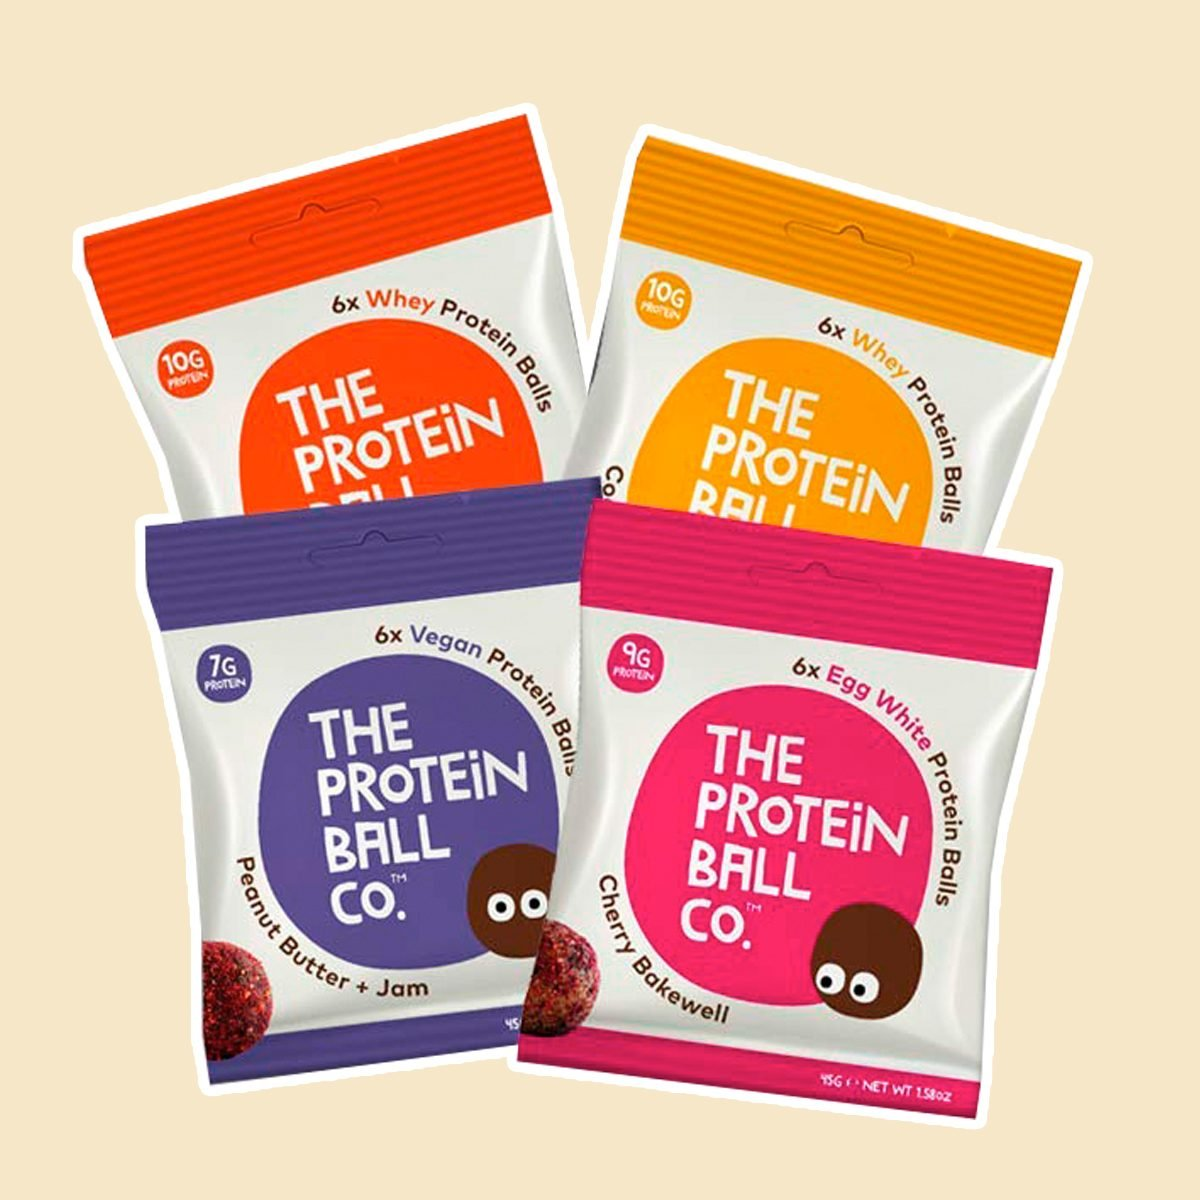 The Protein Ball Co. Keto Protein Bites | 12 Pack Variety | Peanut Butter Jam, Cherry Bakewell, Cocoa Orange, Coconut Macadamia | All Natural, Gluten Free, Vegetarian, Healthy High Protein Snacks